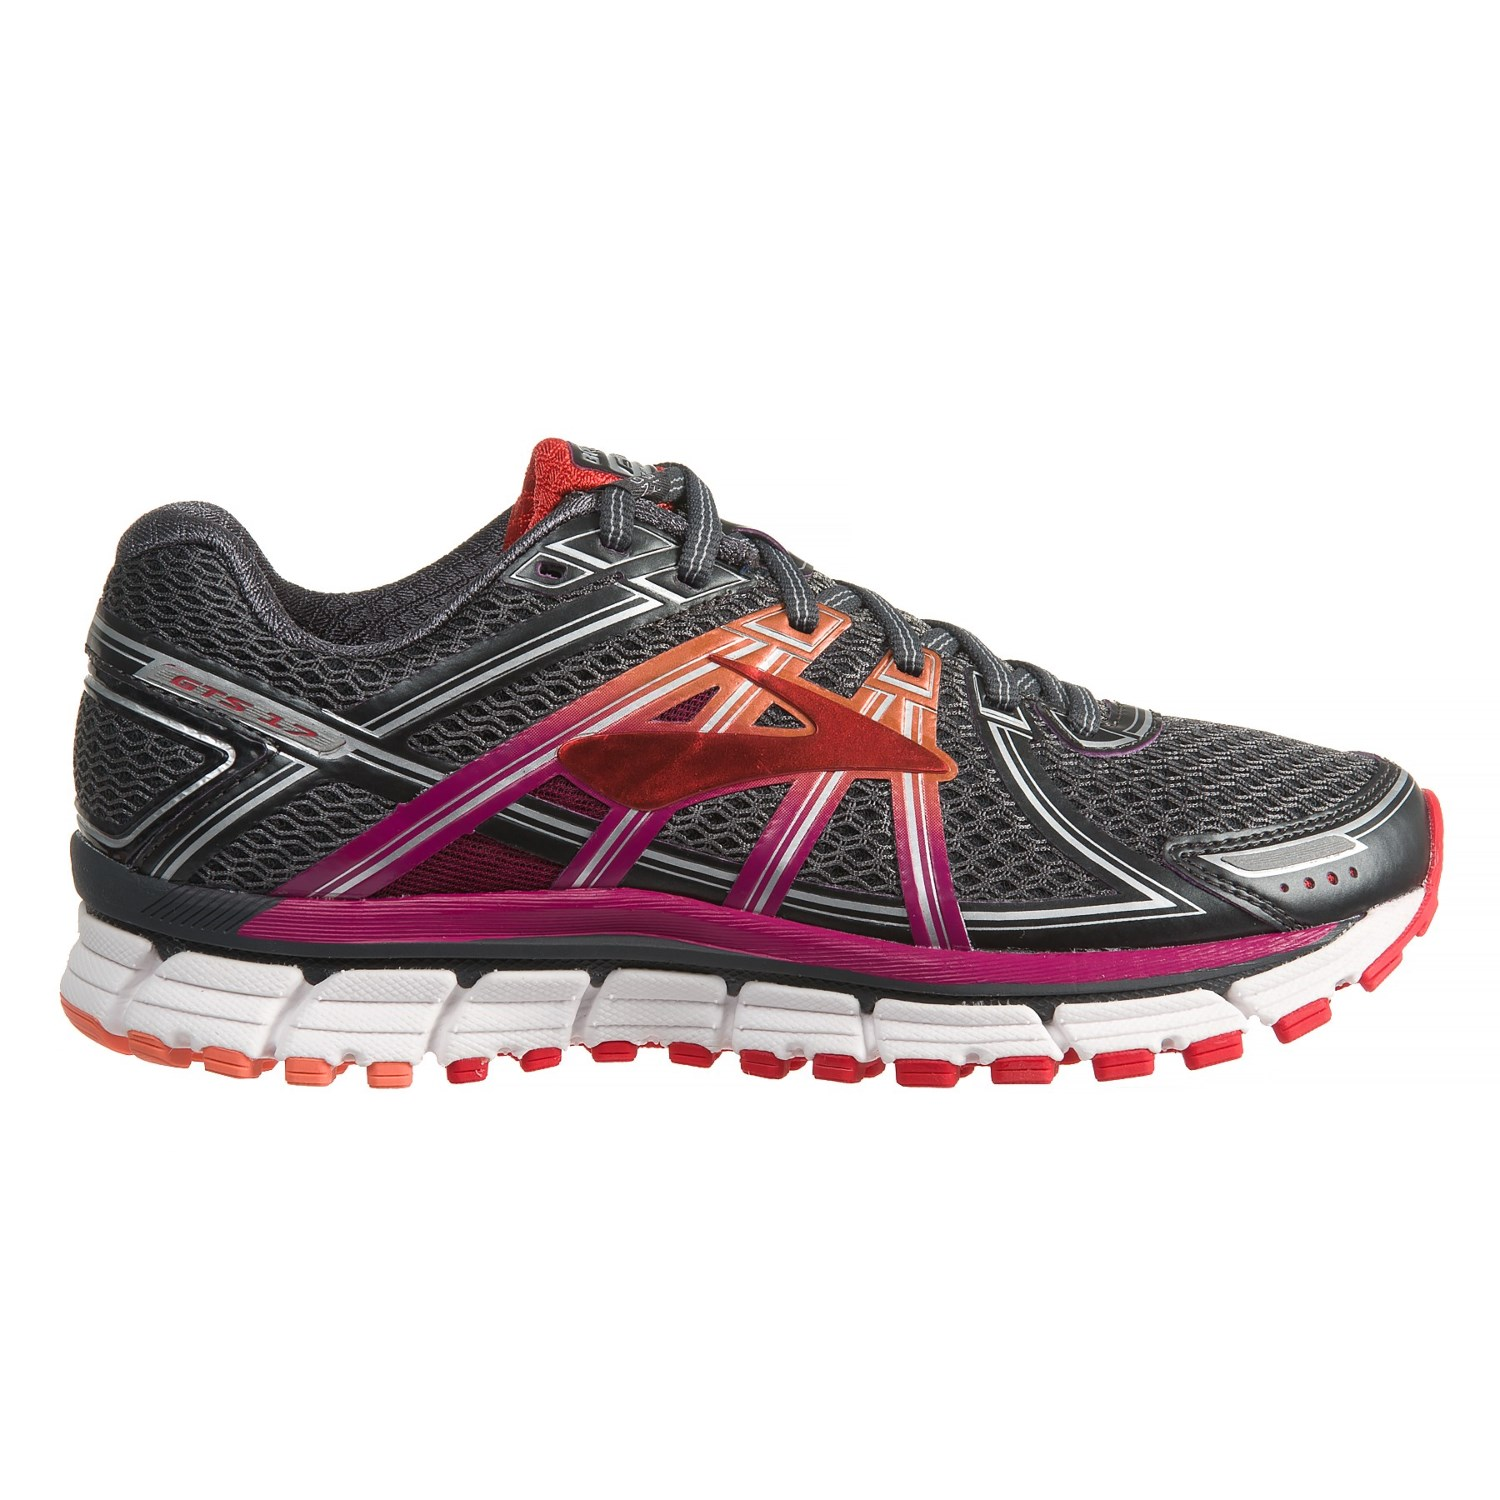 Are Brooks Adrenaline Good Running Shoes